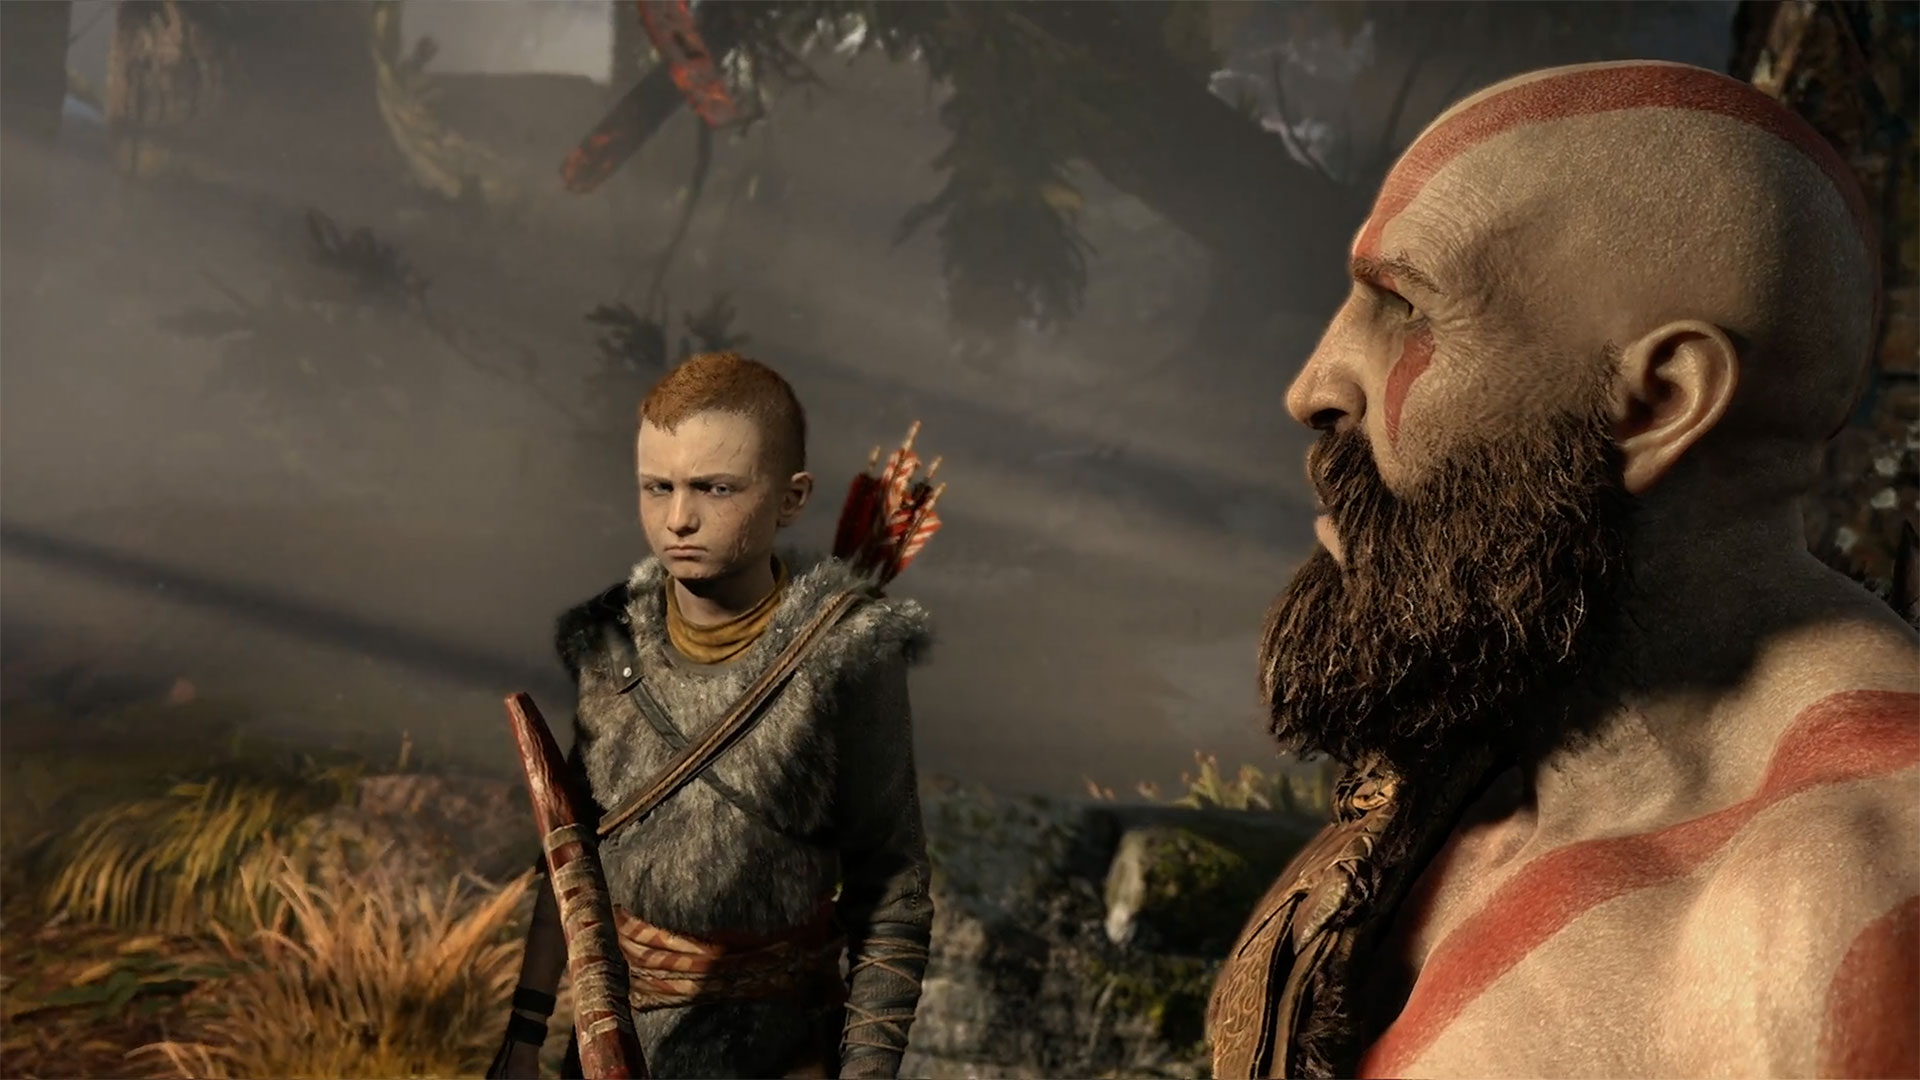 God Of War PS4 Wallpapers in Ultra HD